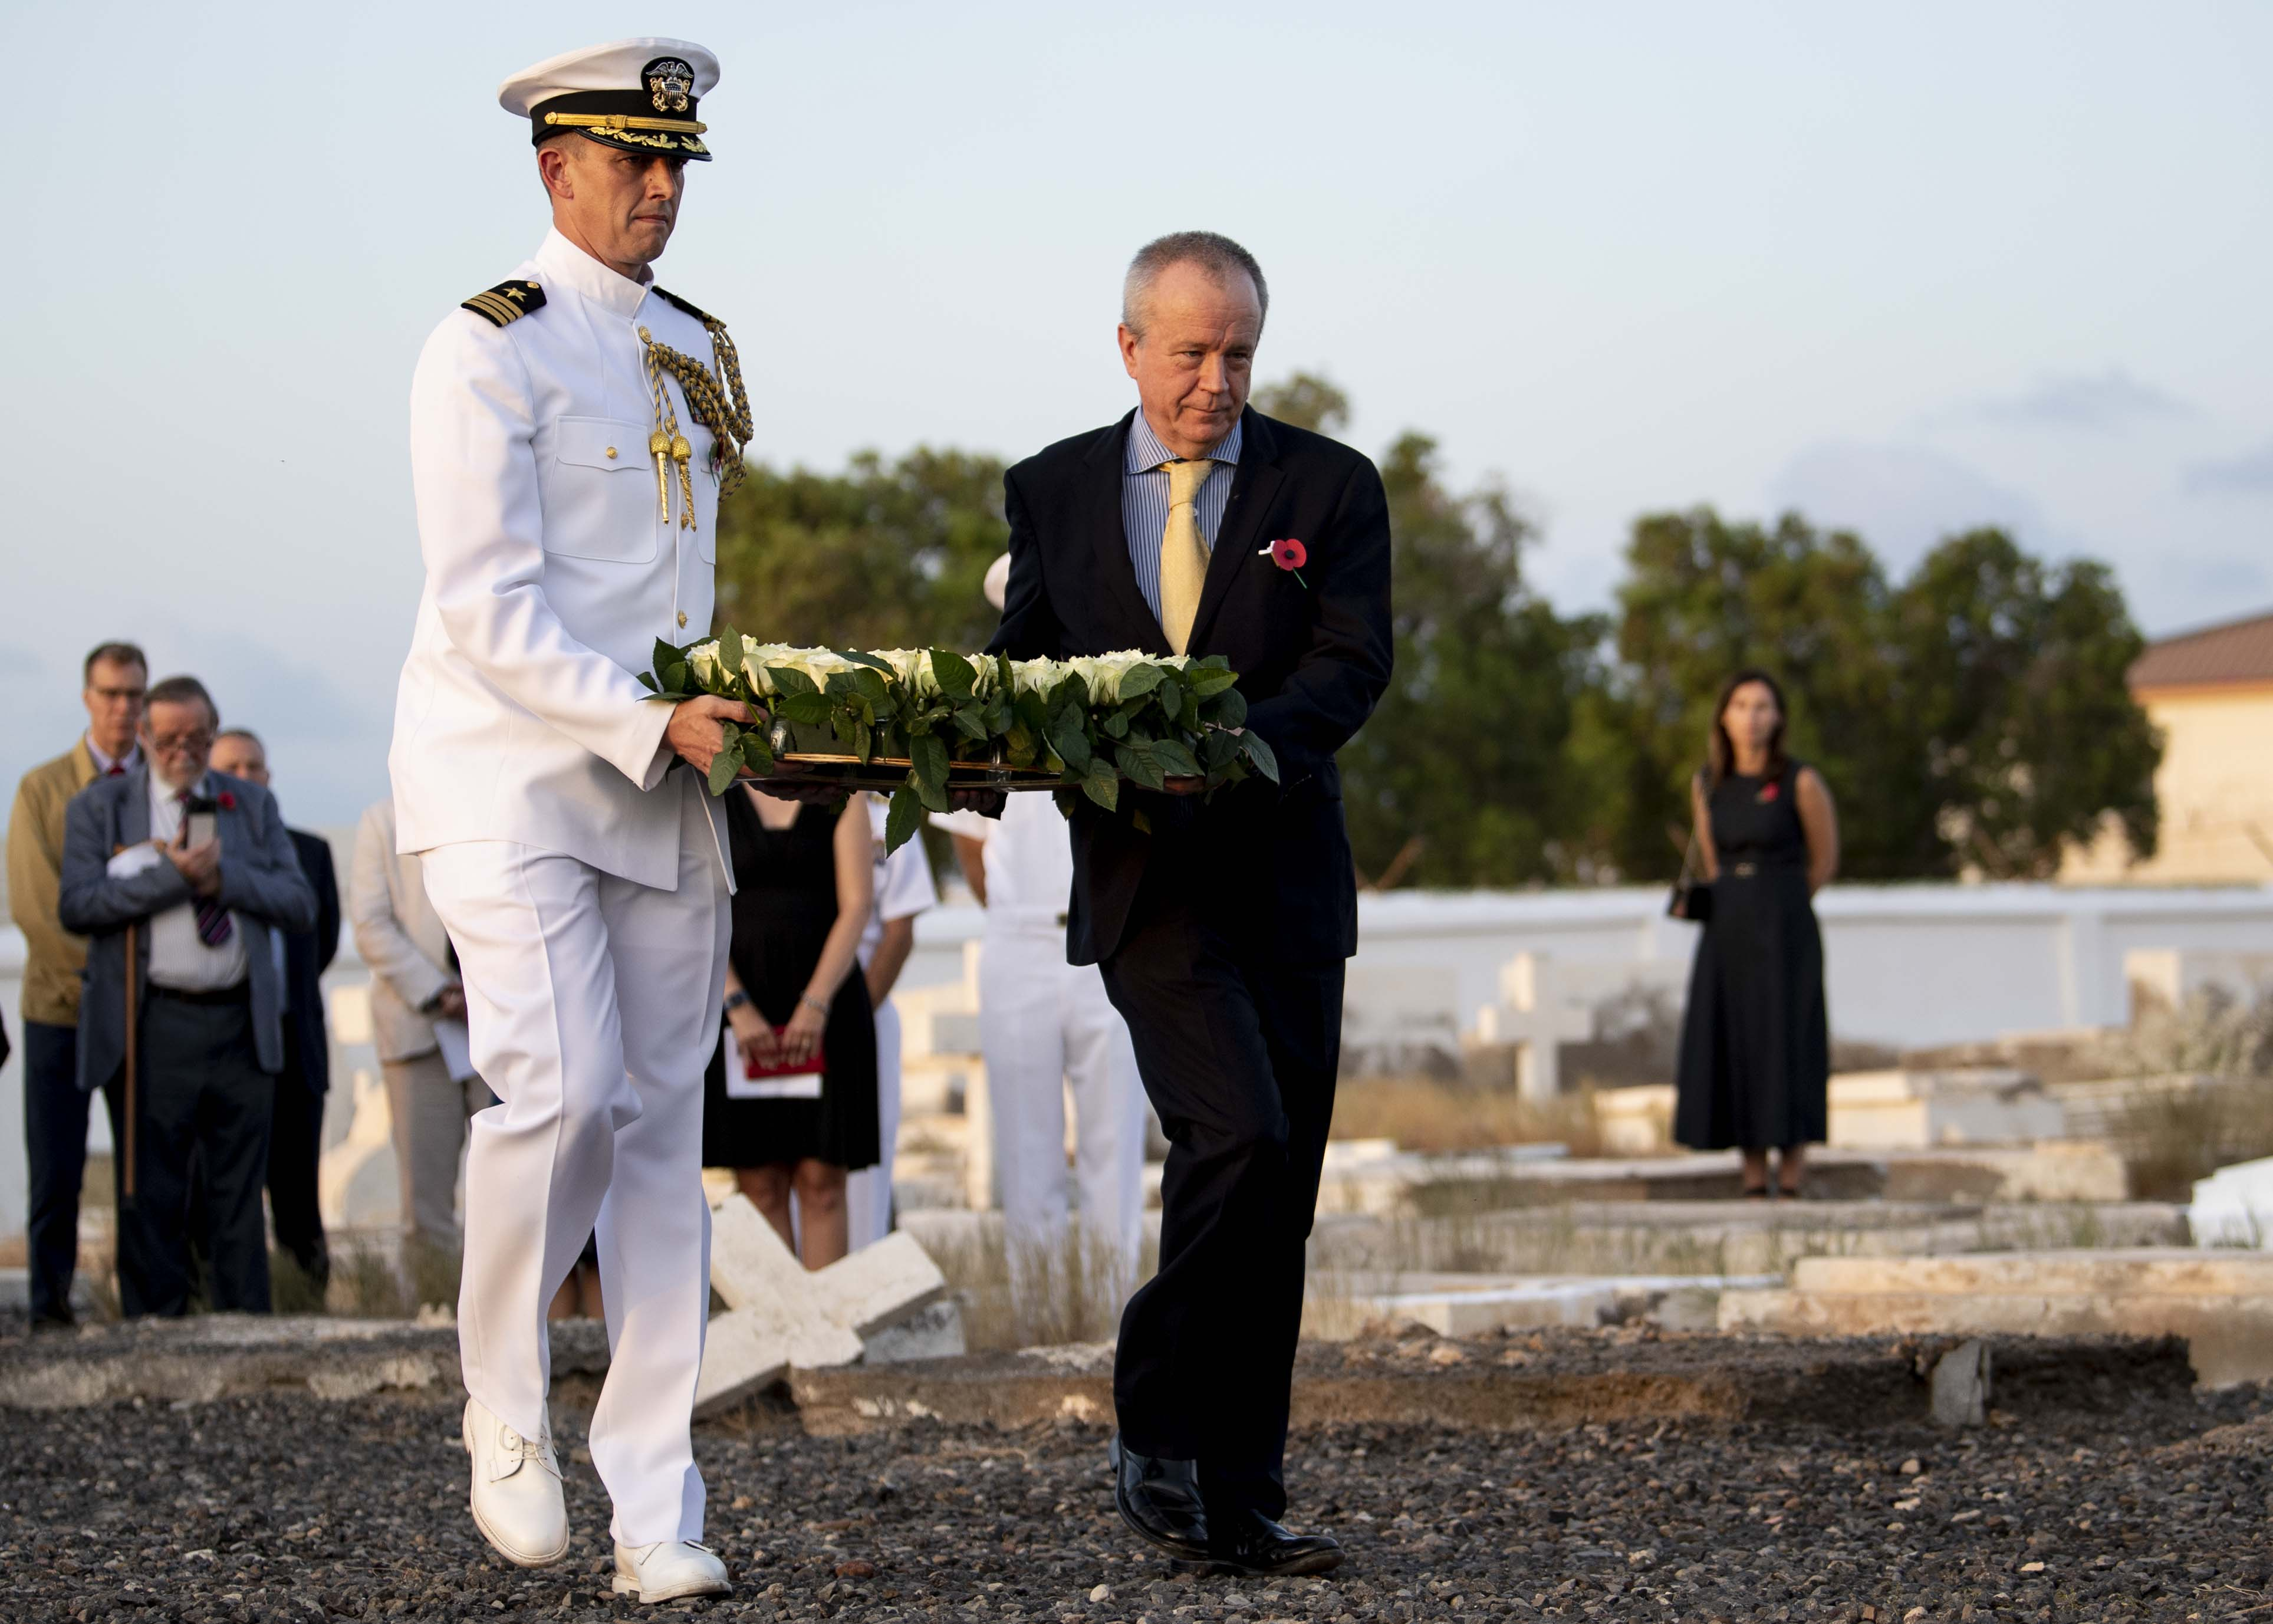 Amb. Larry André Jr., U.S. Ambassador to the Republic of Djibouti and U.S. Navy Cdr. Sean Hayes, defense attaché, U.S. Embassy Djibouti, walk to place a wreath at a memorial during a Remembrance Day service in Djibouti City, Djibouti, Nov. 13, 2019. Traditionally observed on November 11, Remembrance Day commemorates the day hostilities stopped on the western front during World War I. (U.S. Air Force photo by Staff Sgt. J.D. Strong II)